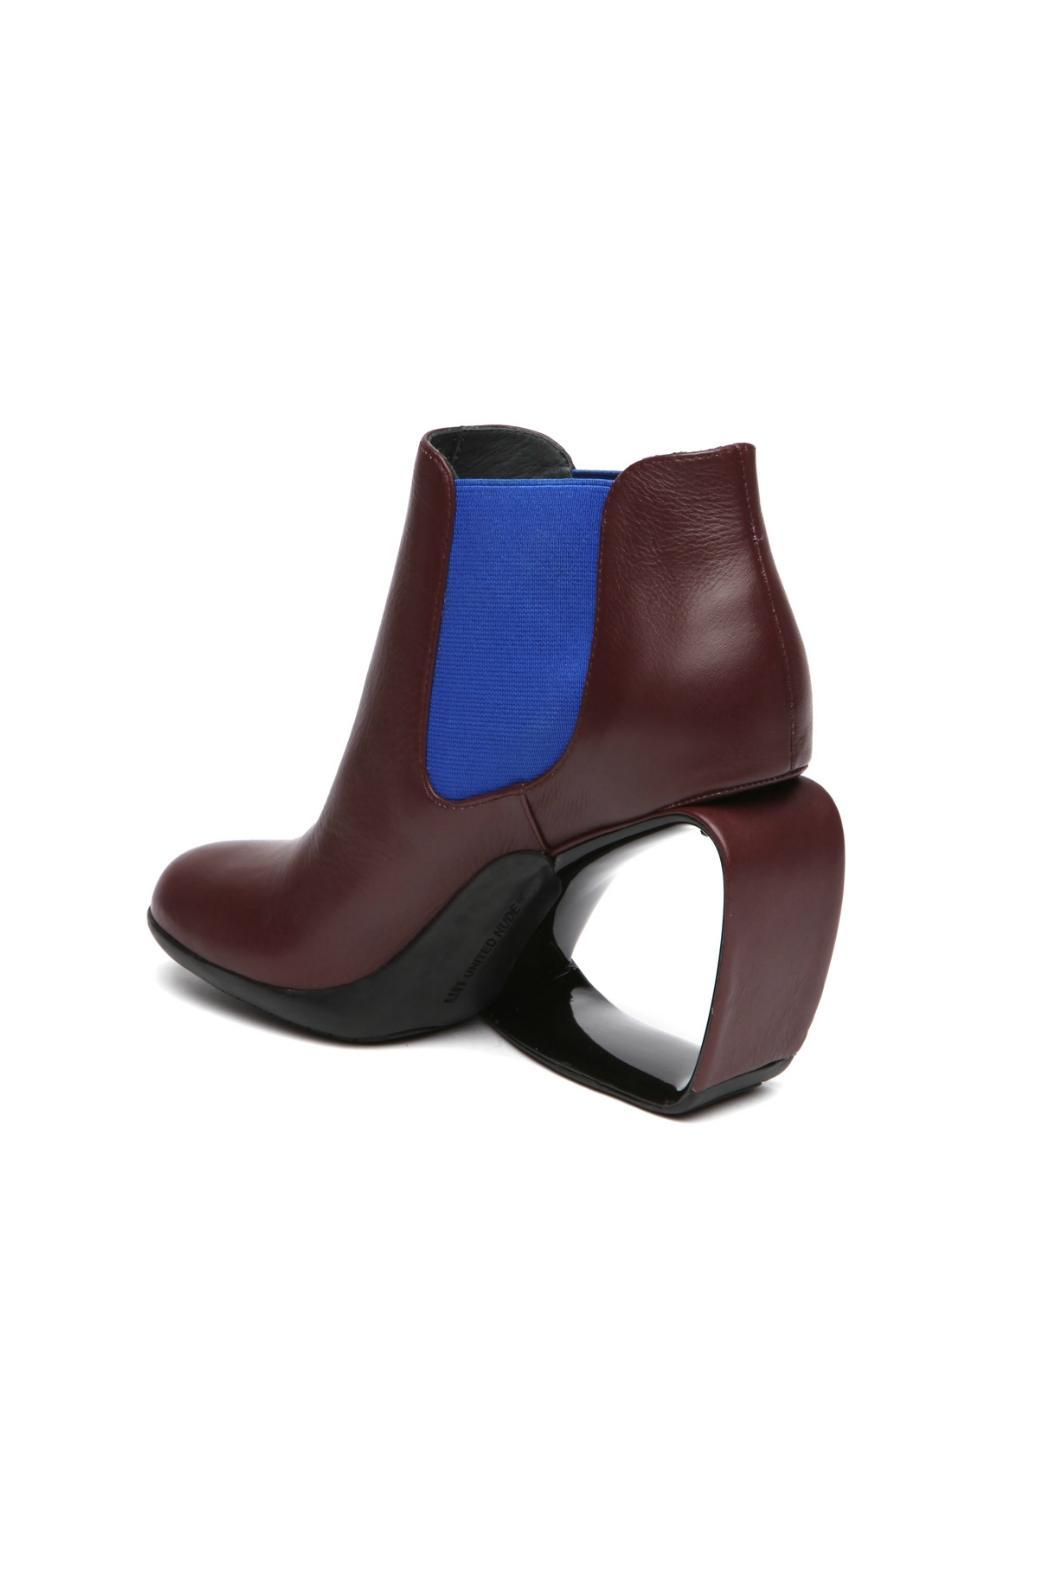 United Nude Burgundy Leather Bootie - Side Cropped Image